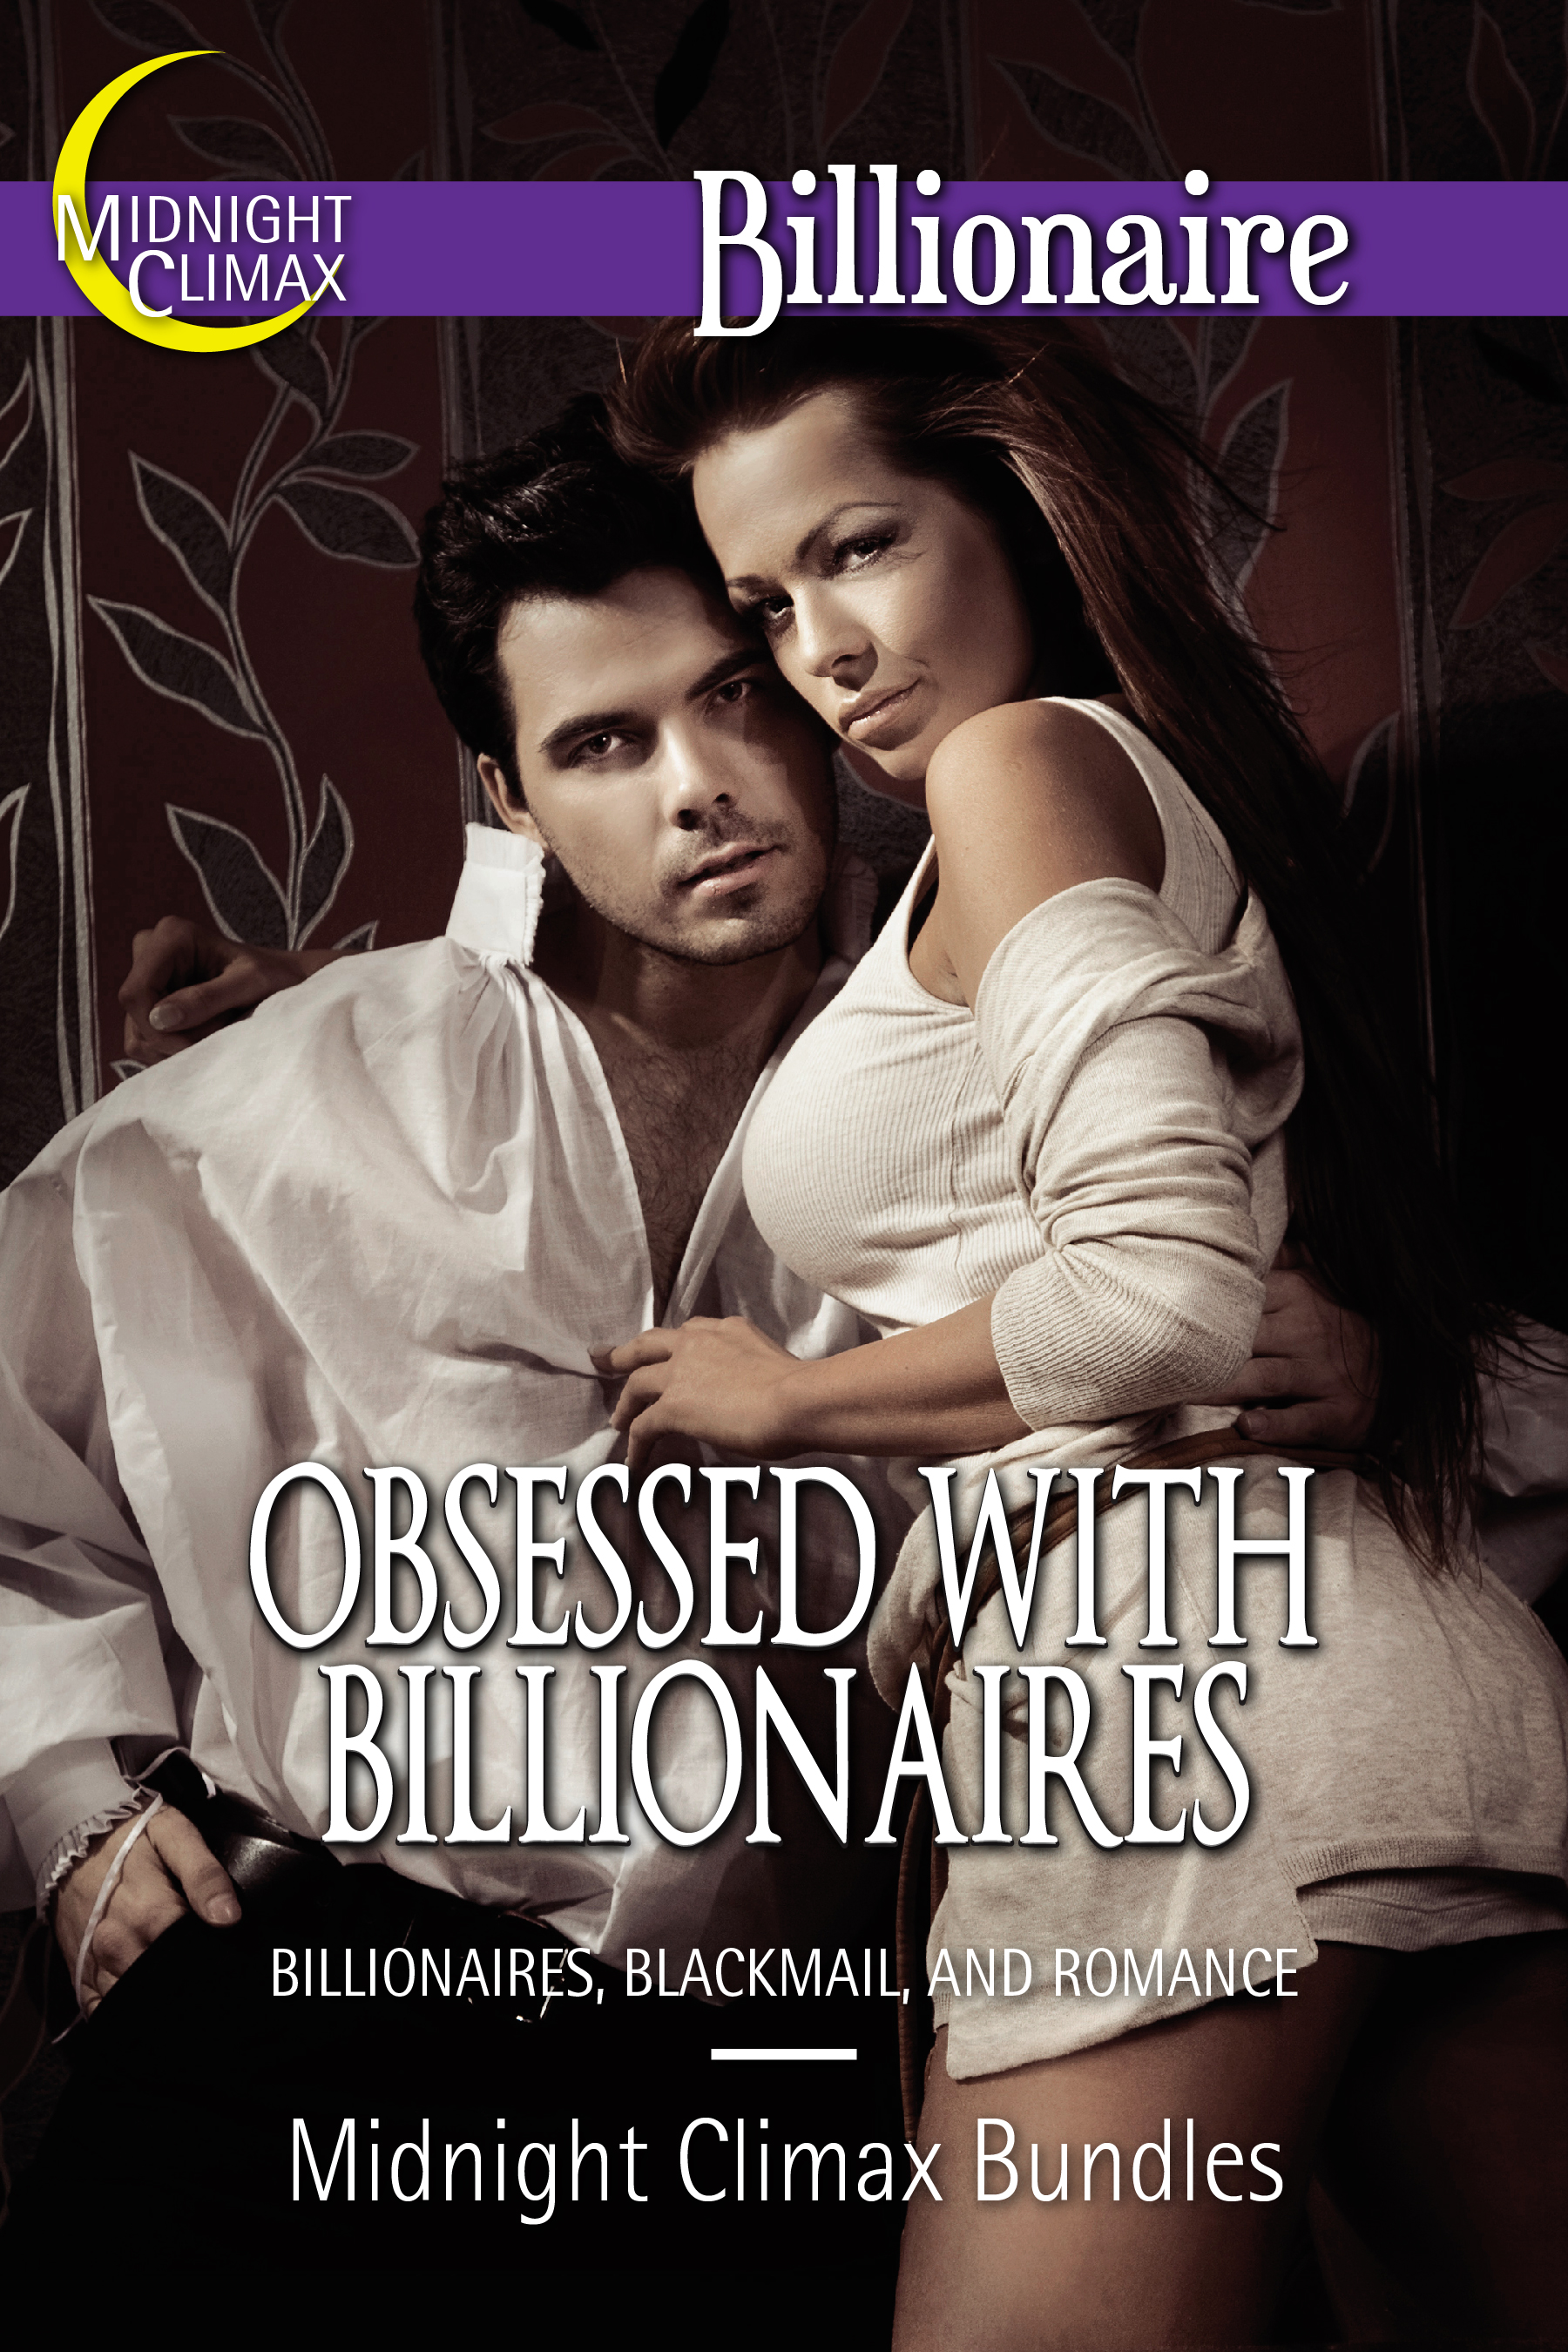 Midnight Climax Bundles - Obsessed With Billionaires (Billionaires, Blackmail and Romance)